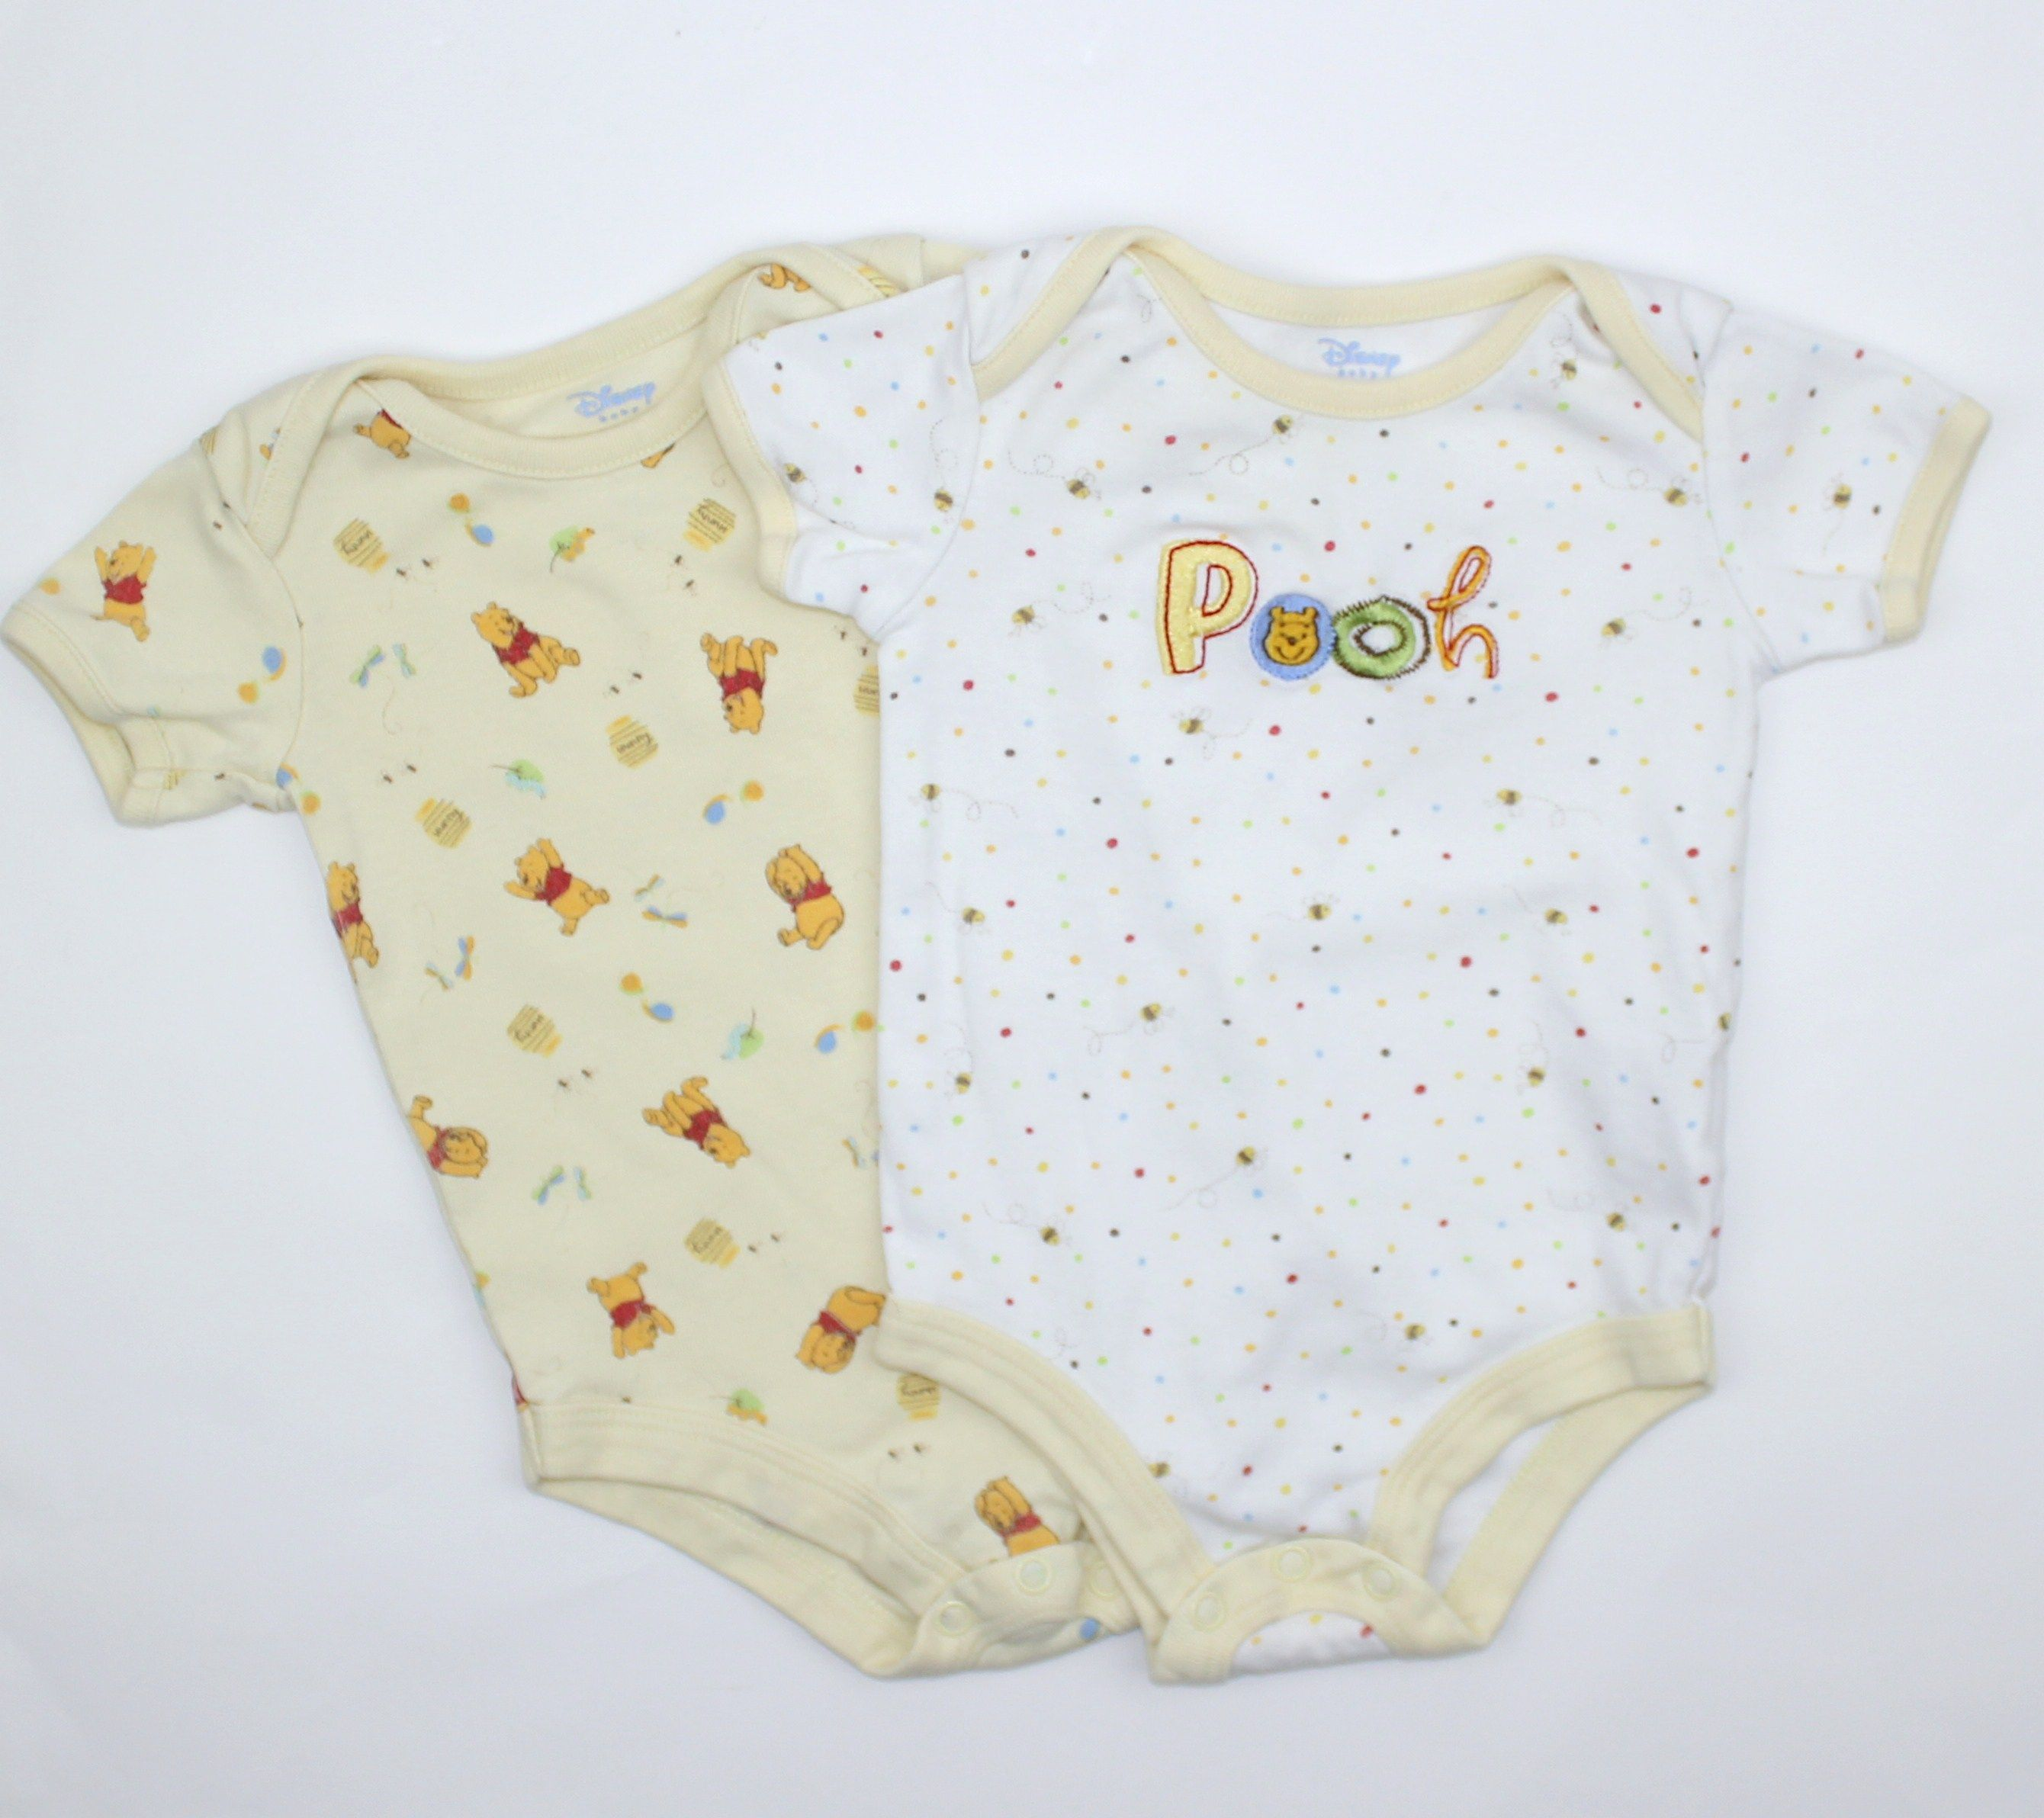 Cute Disney Baby Onesies 2 With Winnie The Pooh In Size 0 3 Months And Only 4 Online Resale At Disney Baby Clothes Storing Kids Clothes Online Kids Clothes